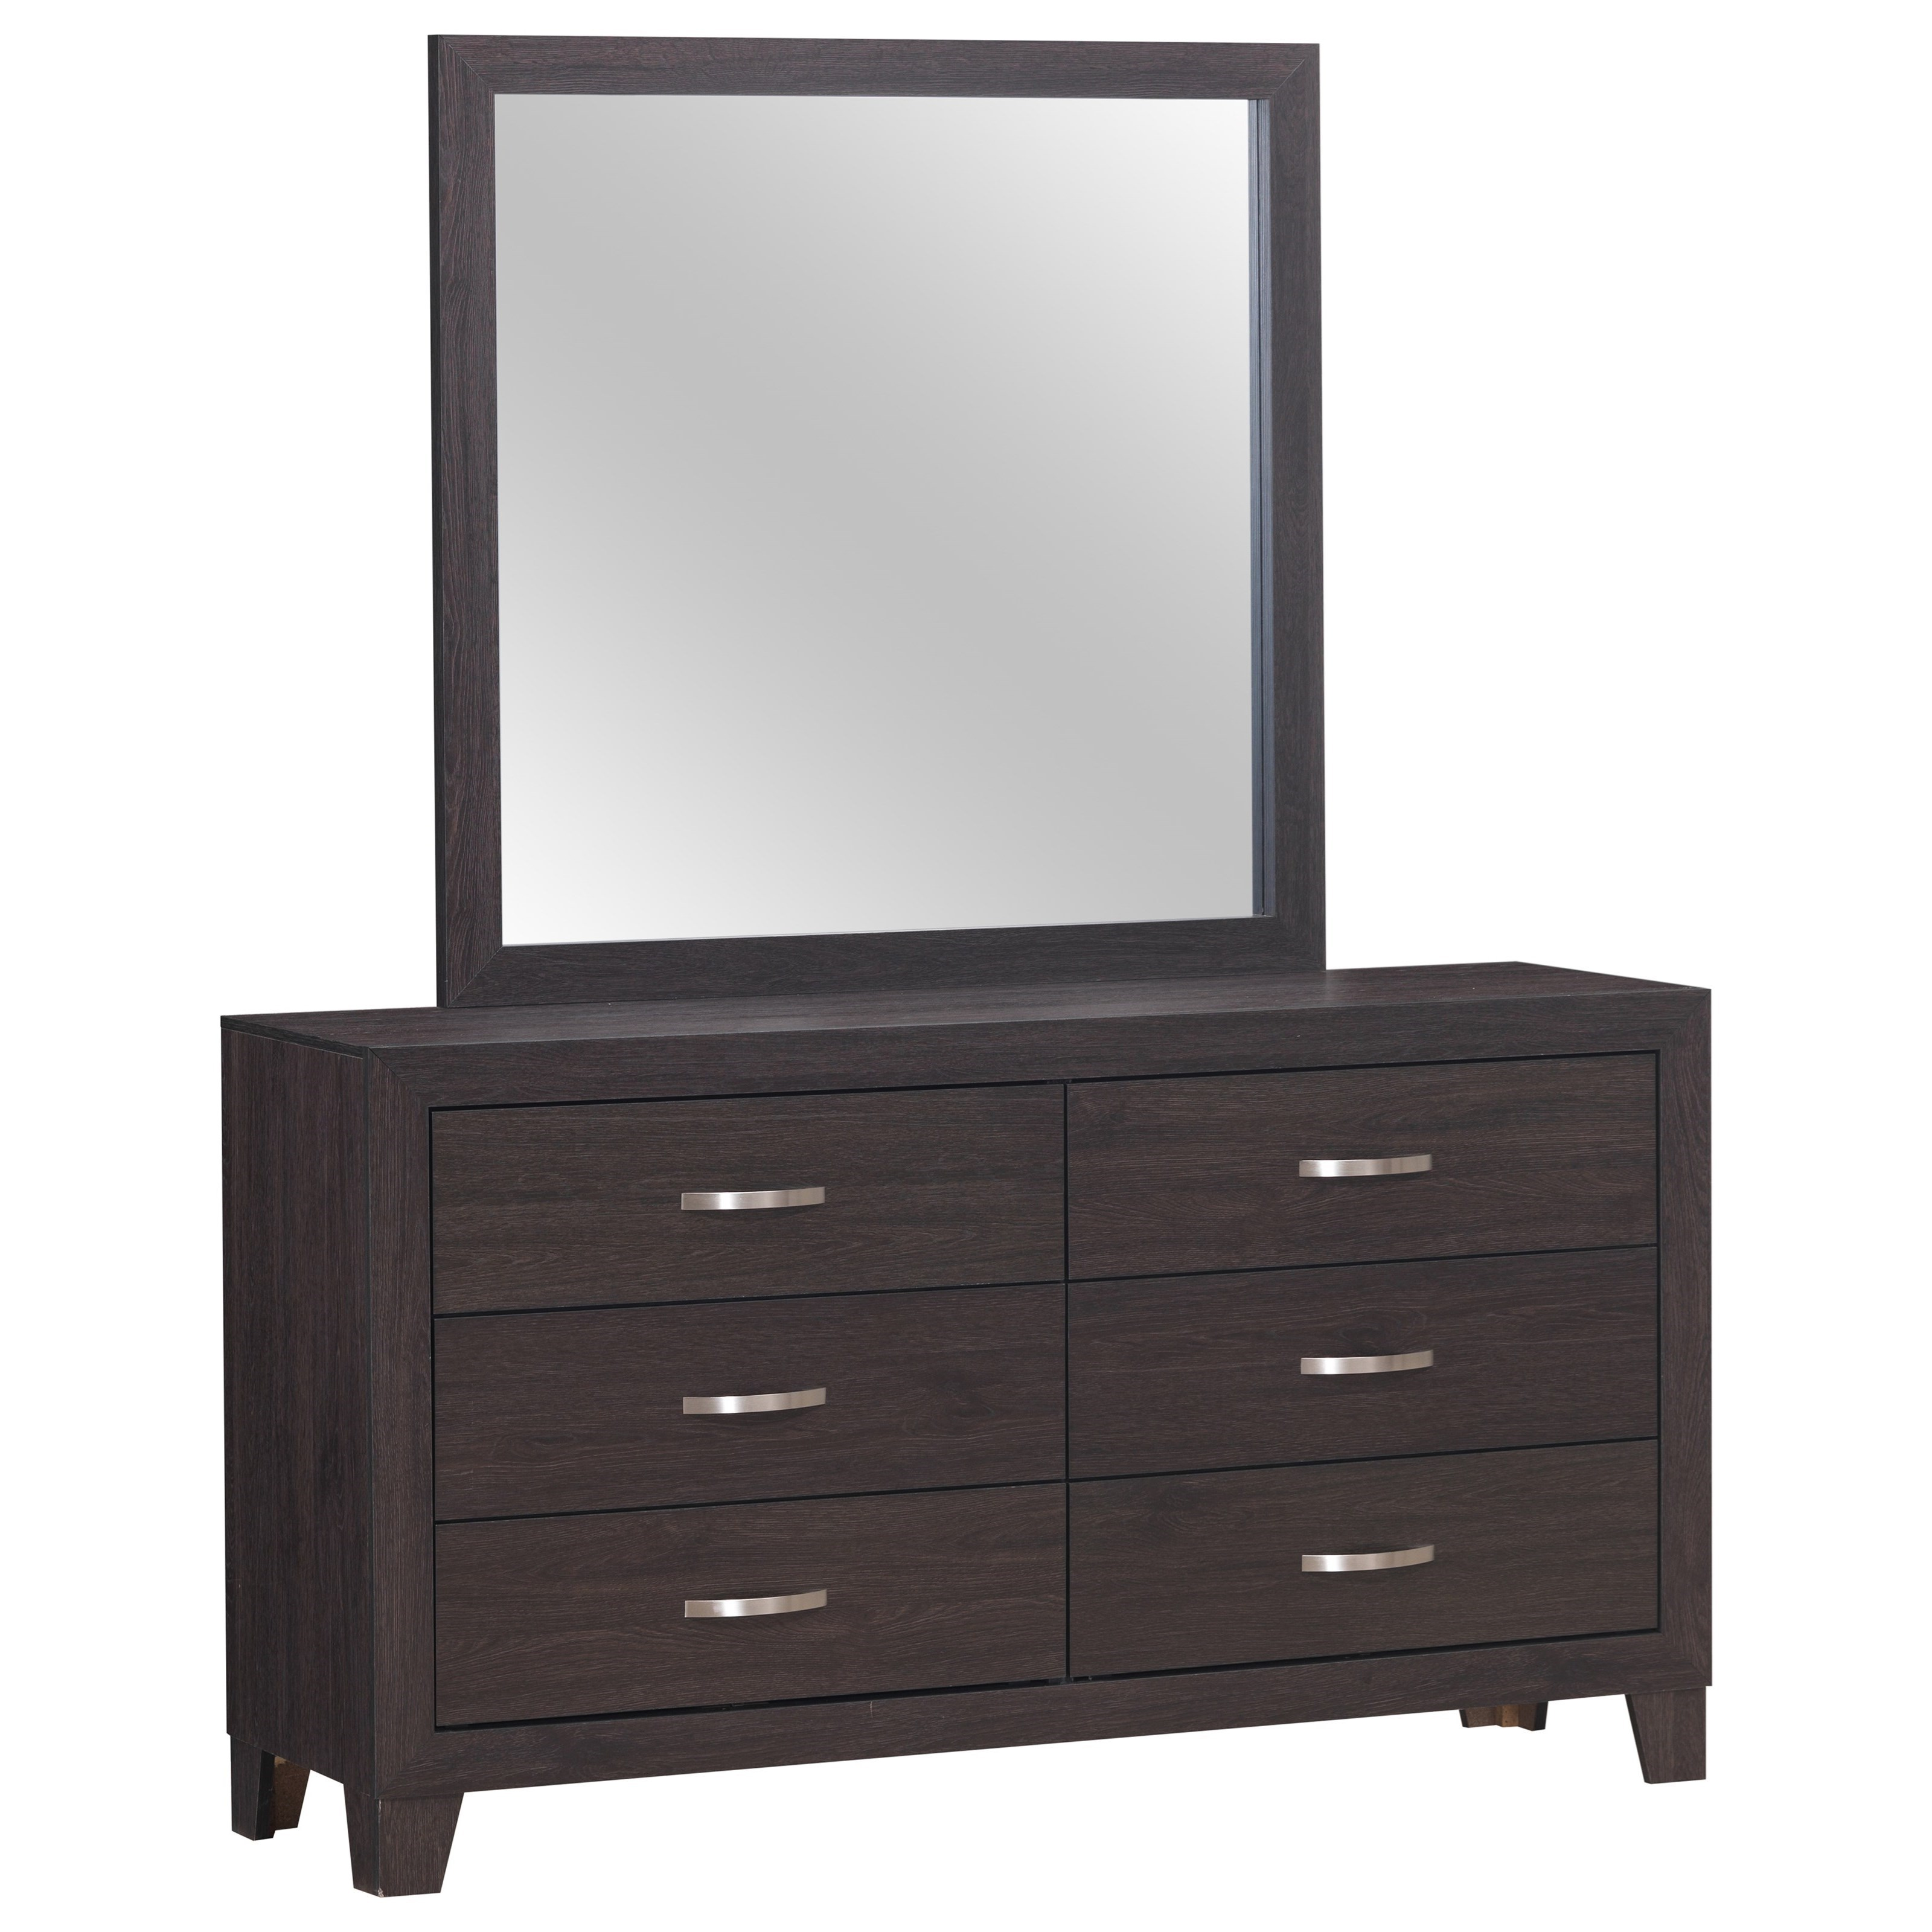 Hopkins Dresser and Mirror by Crown Mark at Catalog Outlet